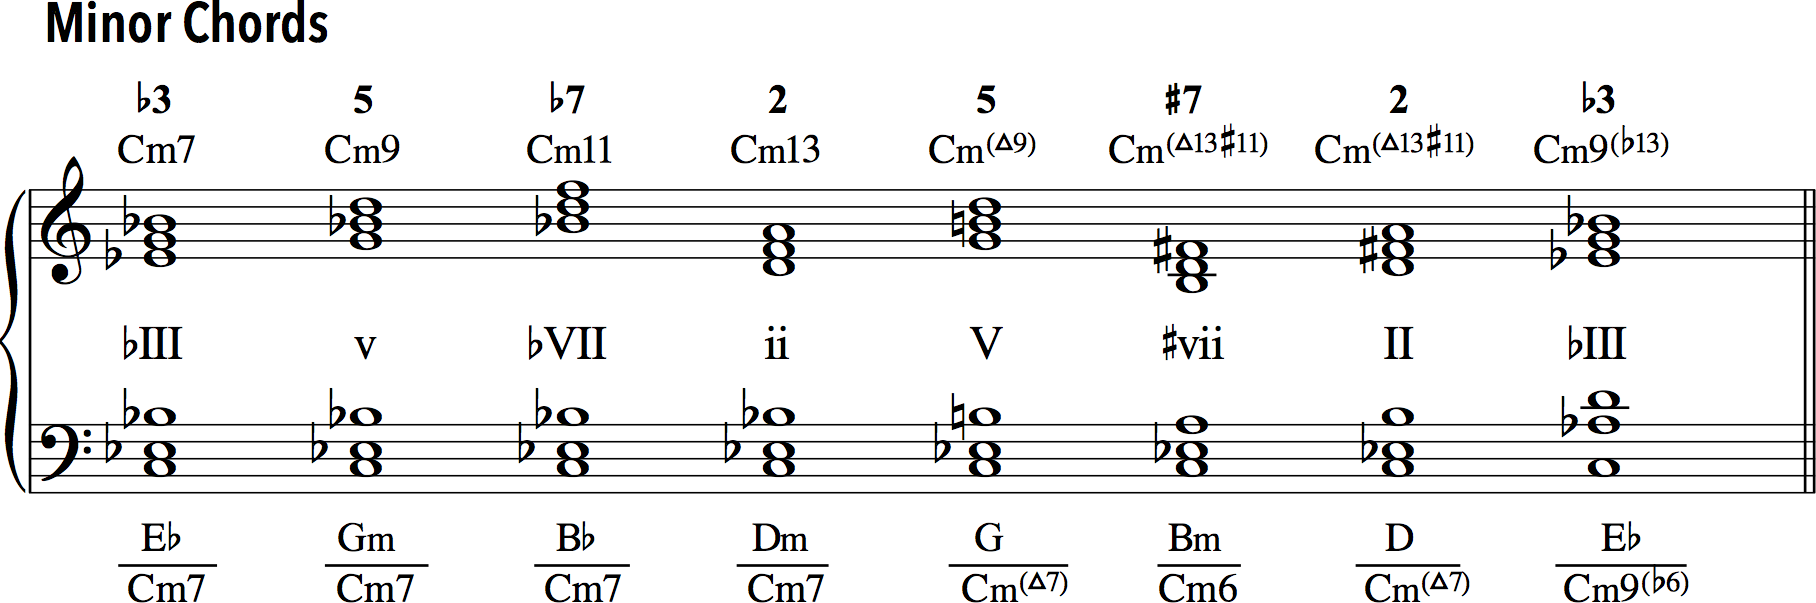 Upper-structure triads over minor chords.